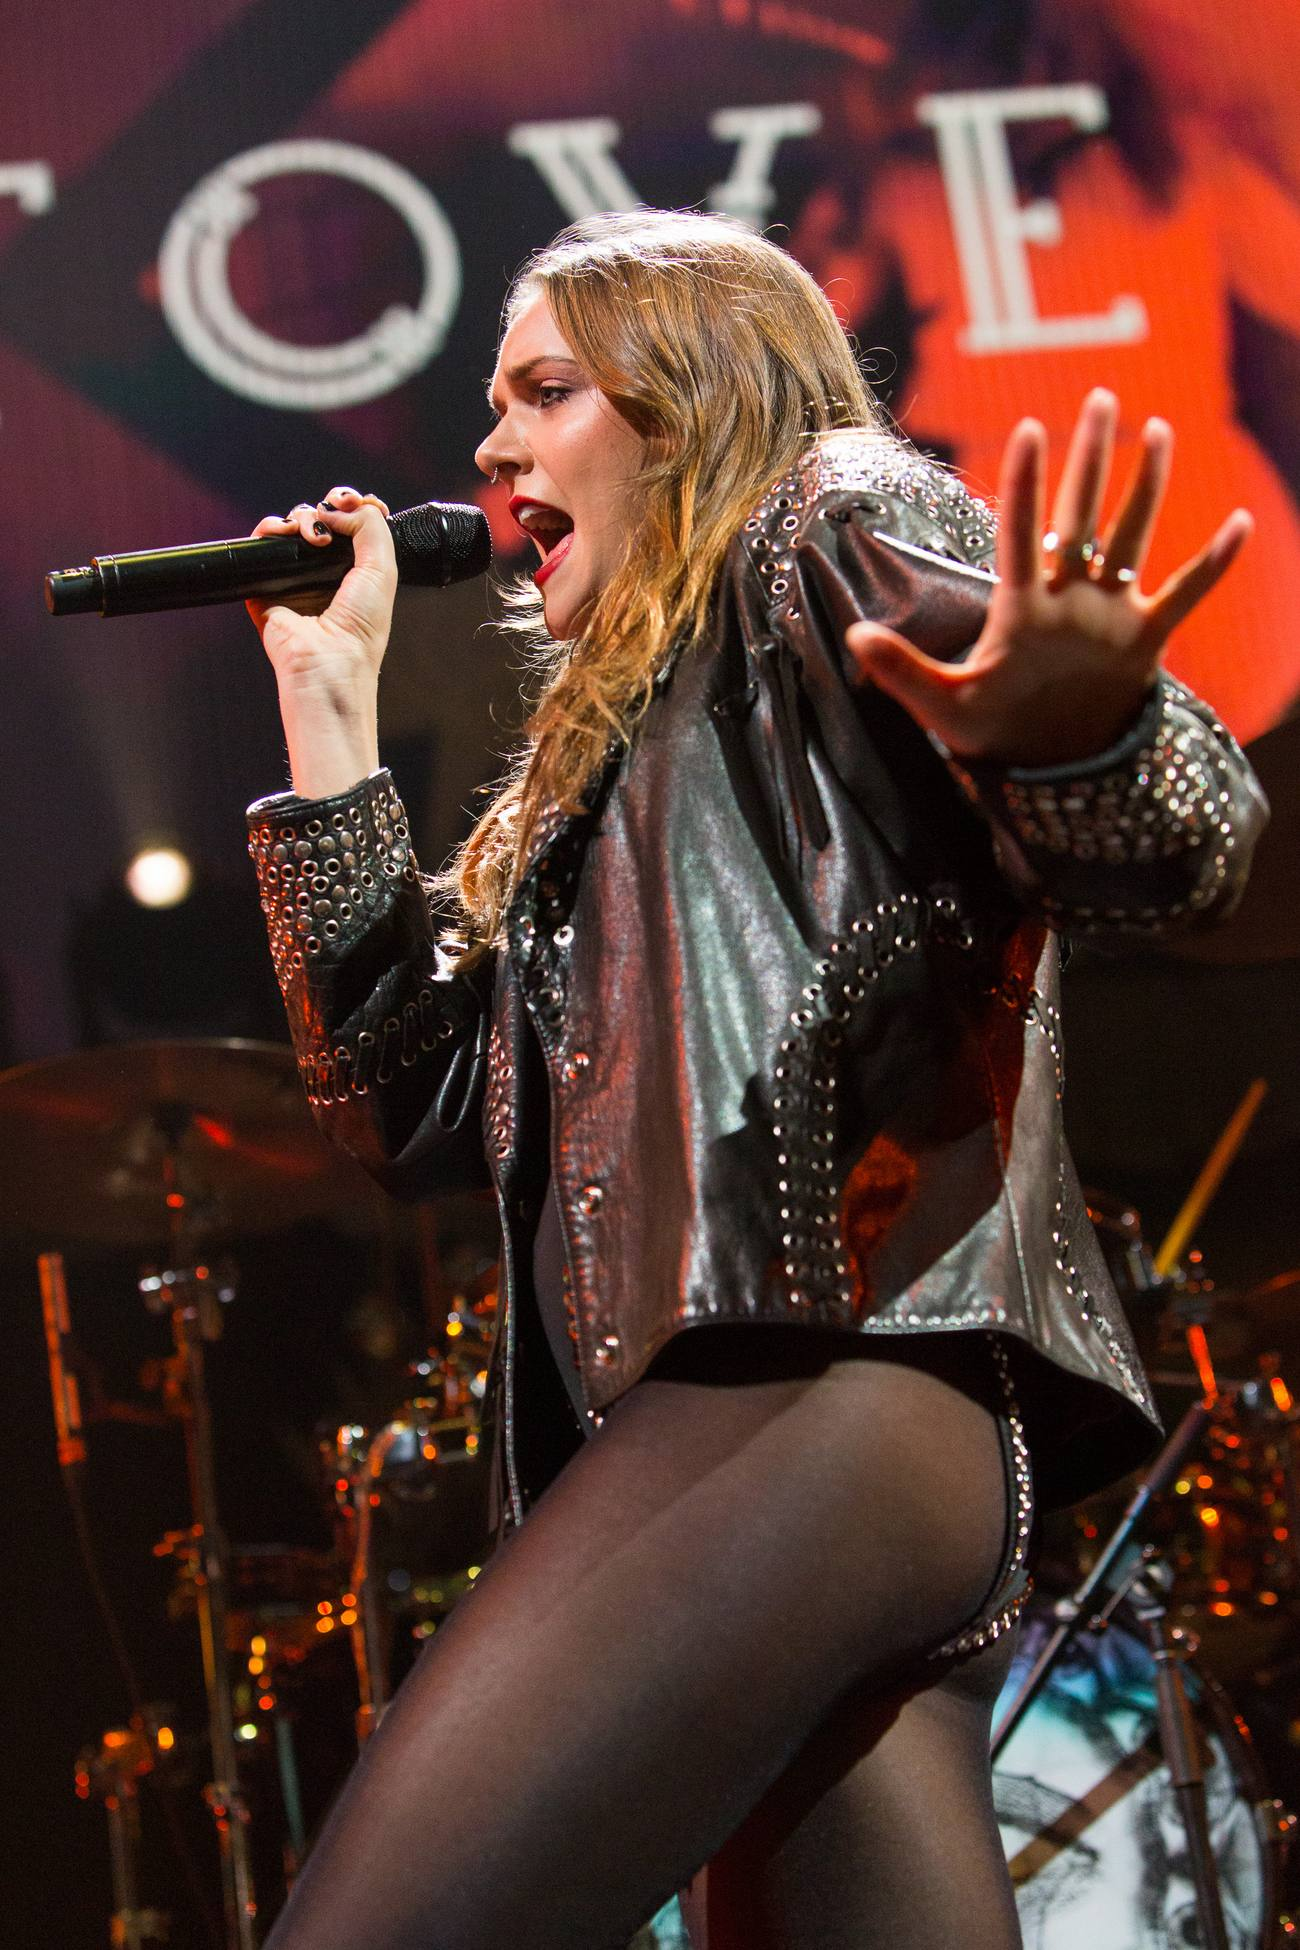 Tove Lo Shows Side Cleavage at Qs iHeartRadio Jingle Ball-1